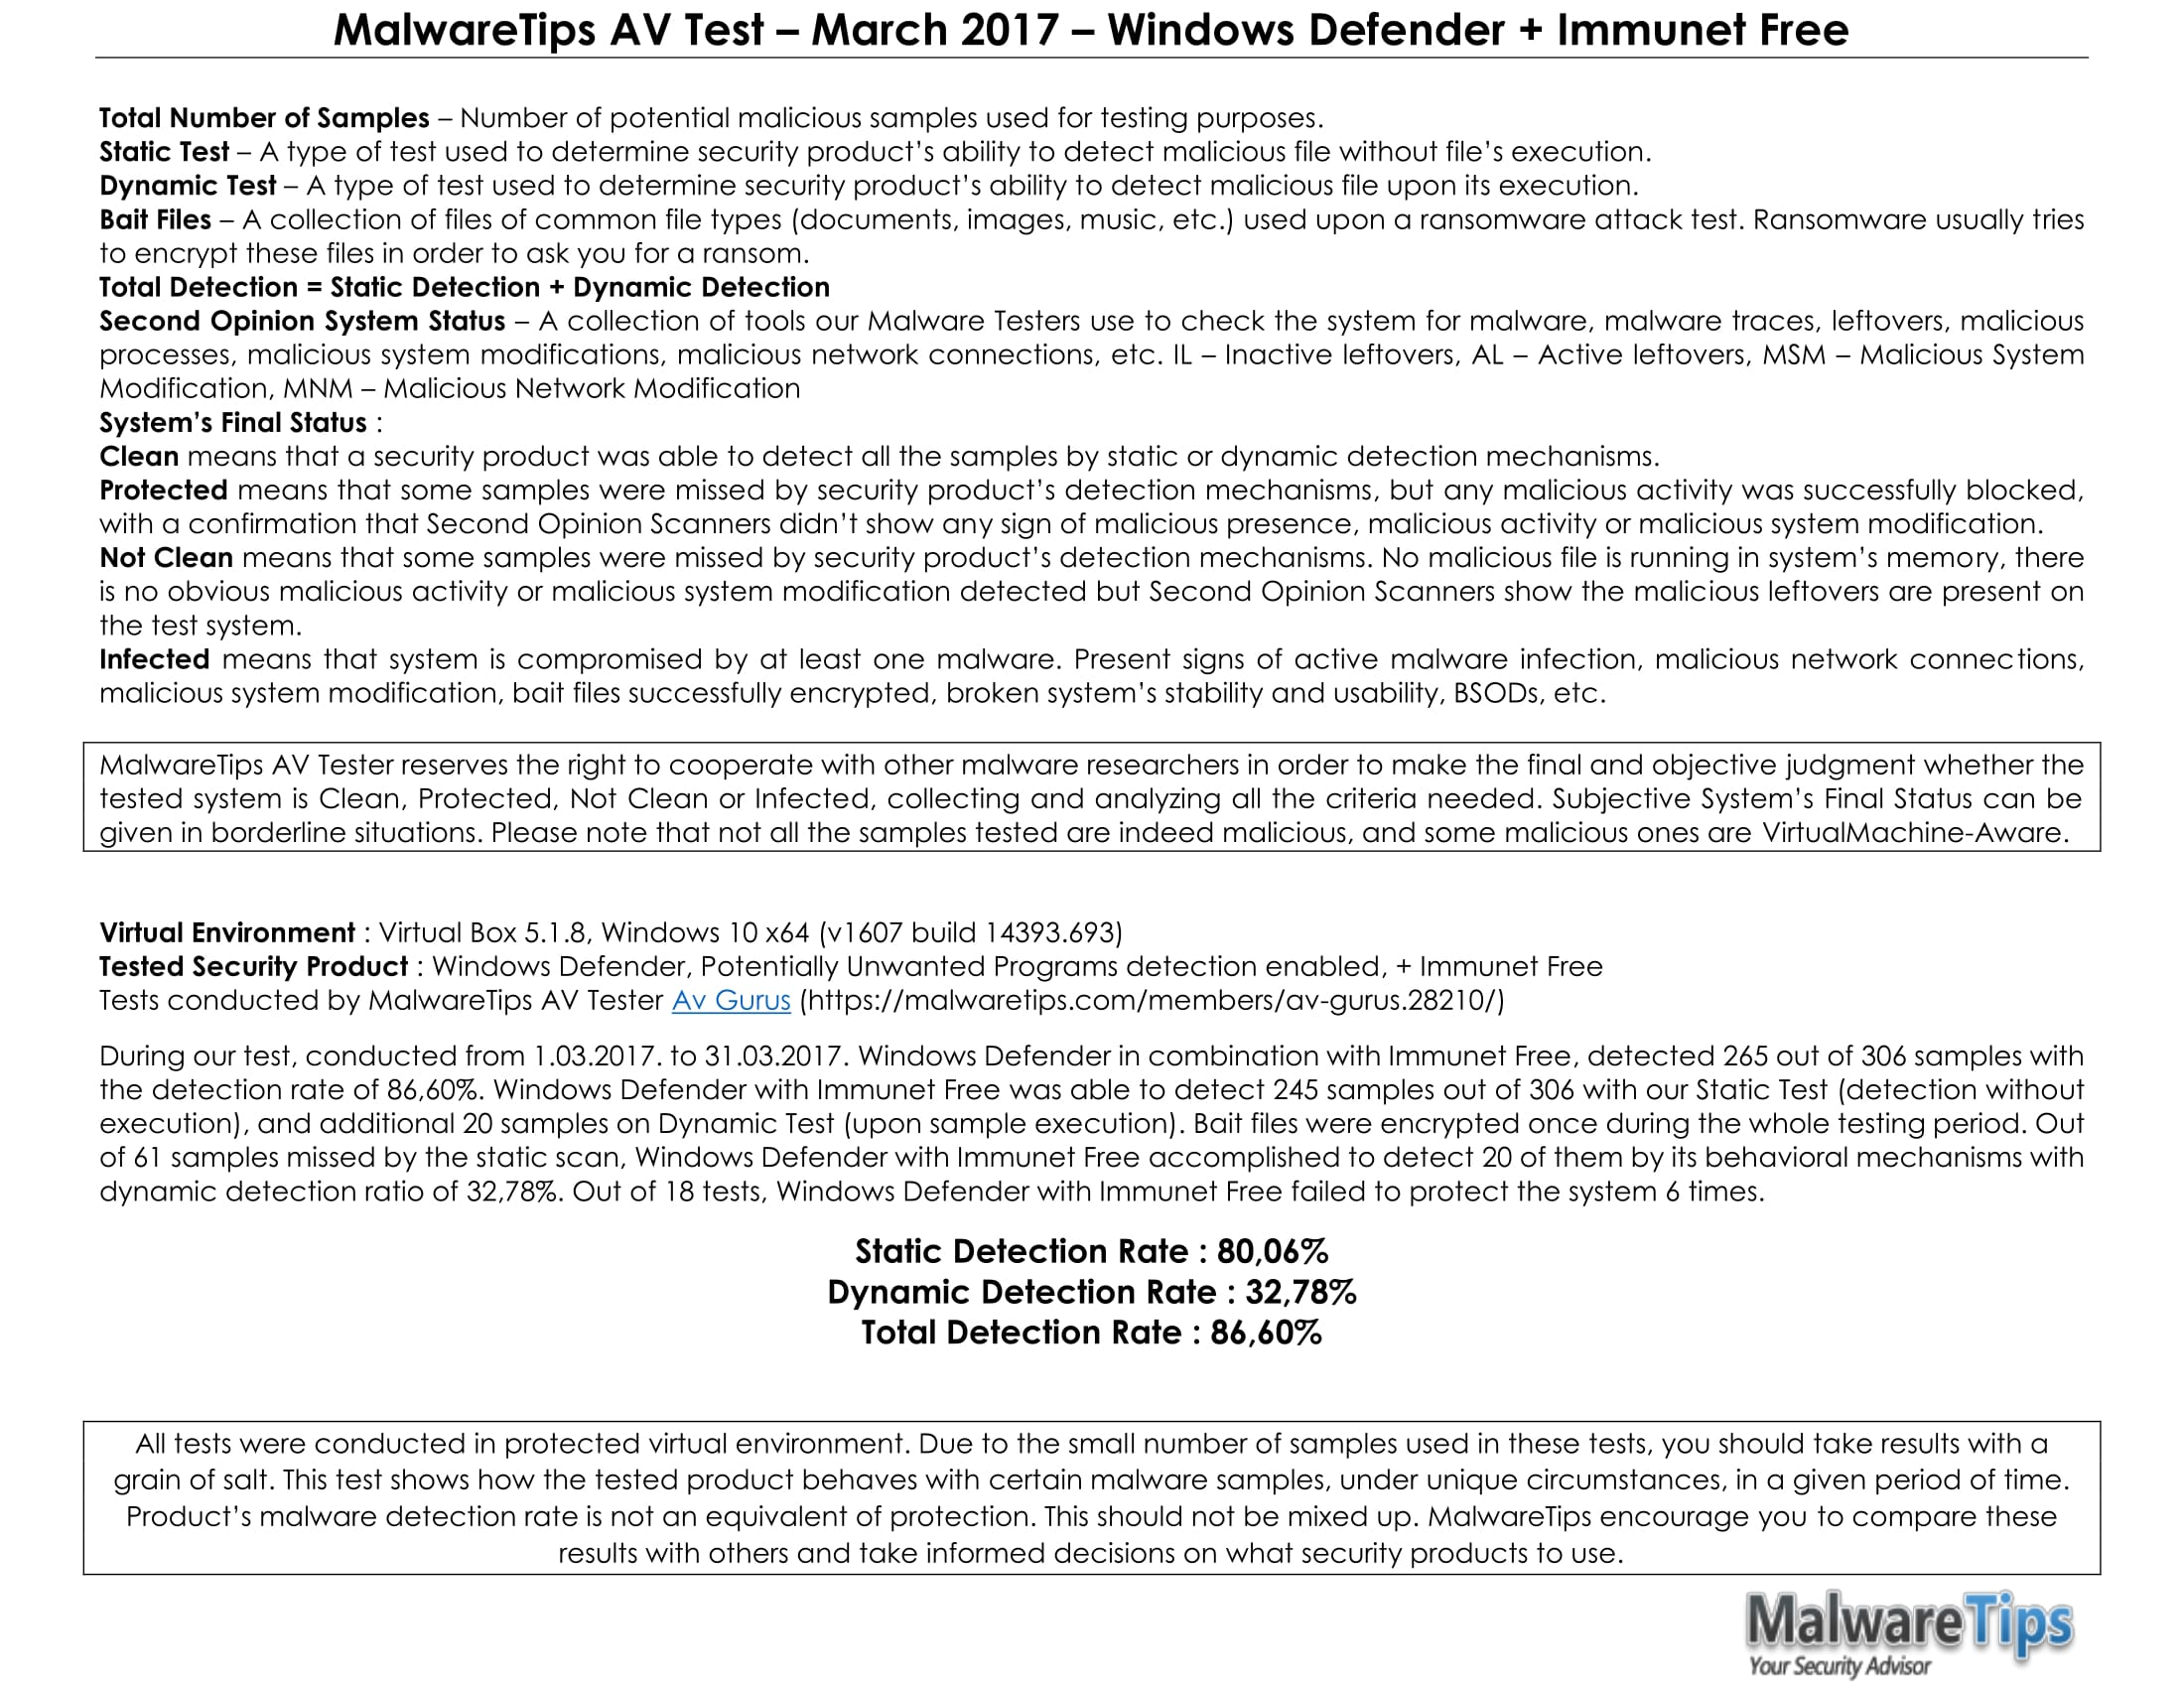 MalwareTips AV Test – March 2017 – Windows Defender + Immunet Free-2.jpg